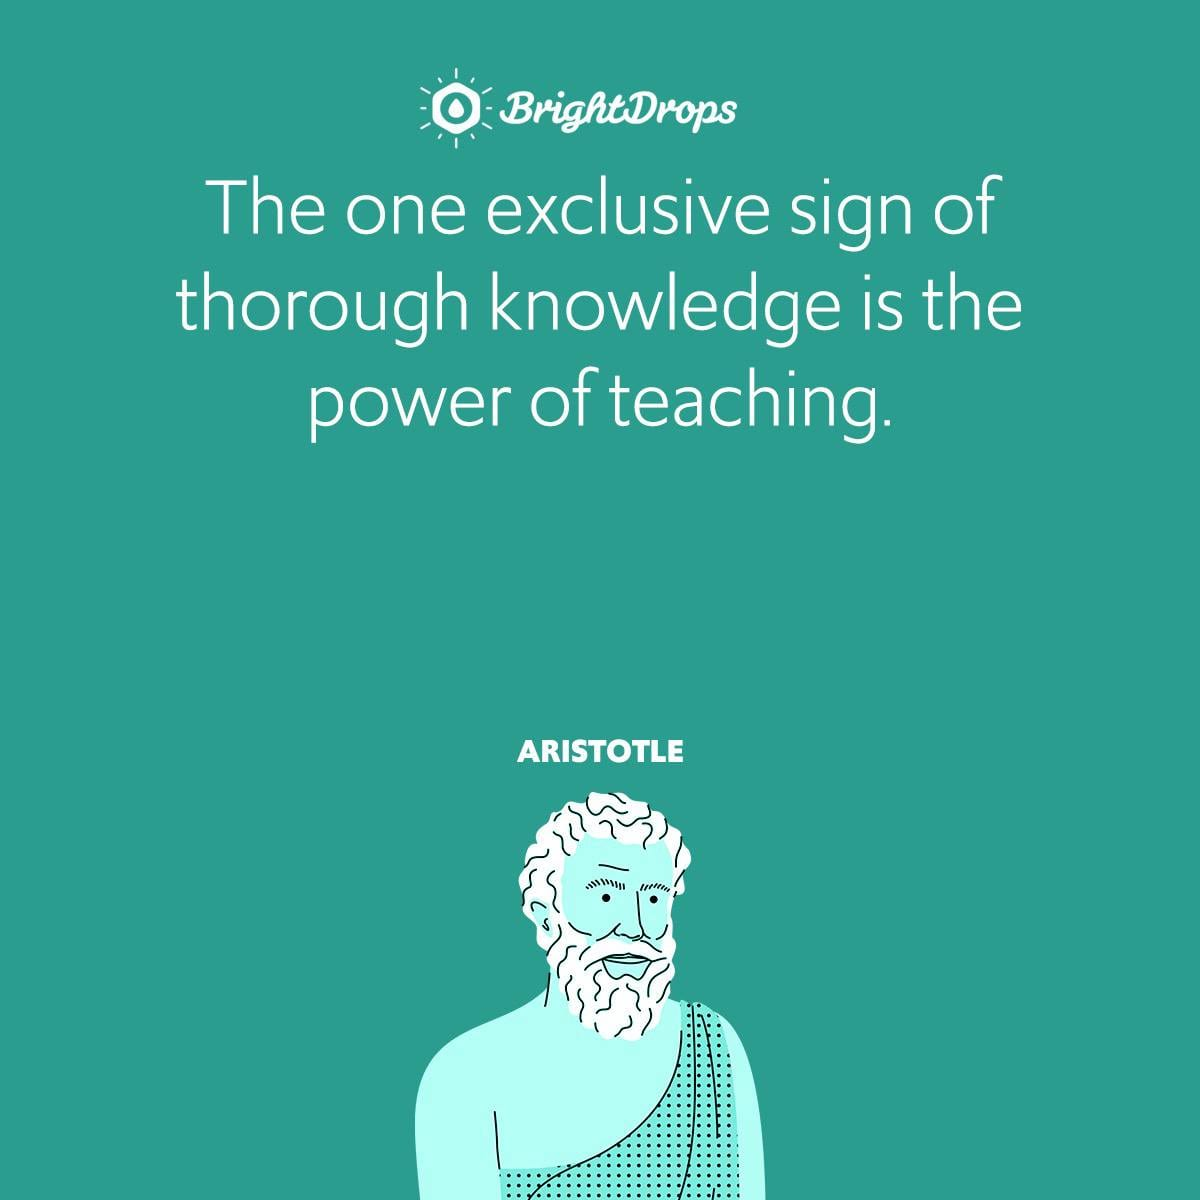 The one exclusive sign of thorough knowledge is the power of teaching.